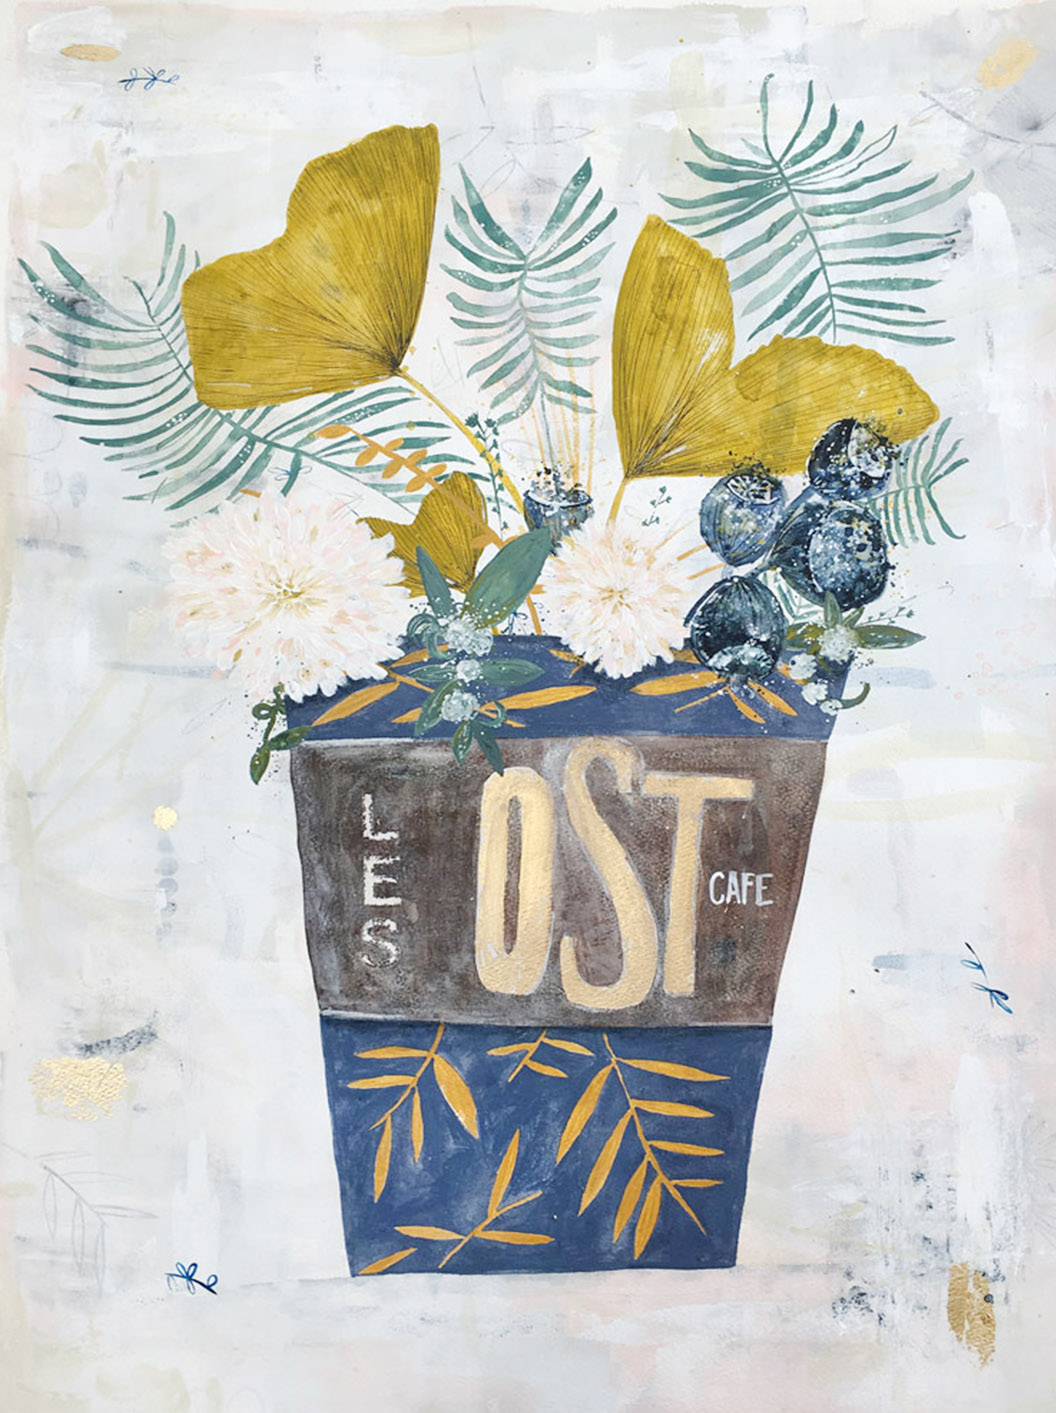 OST, Acrylic, Gouache and gold leaf on handmade paper